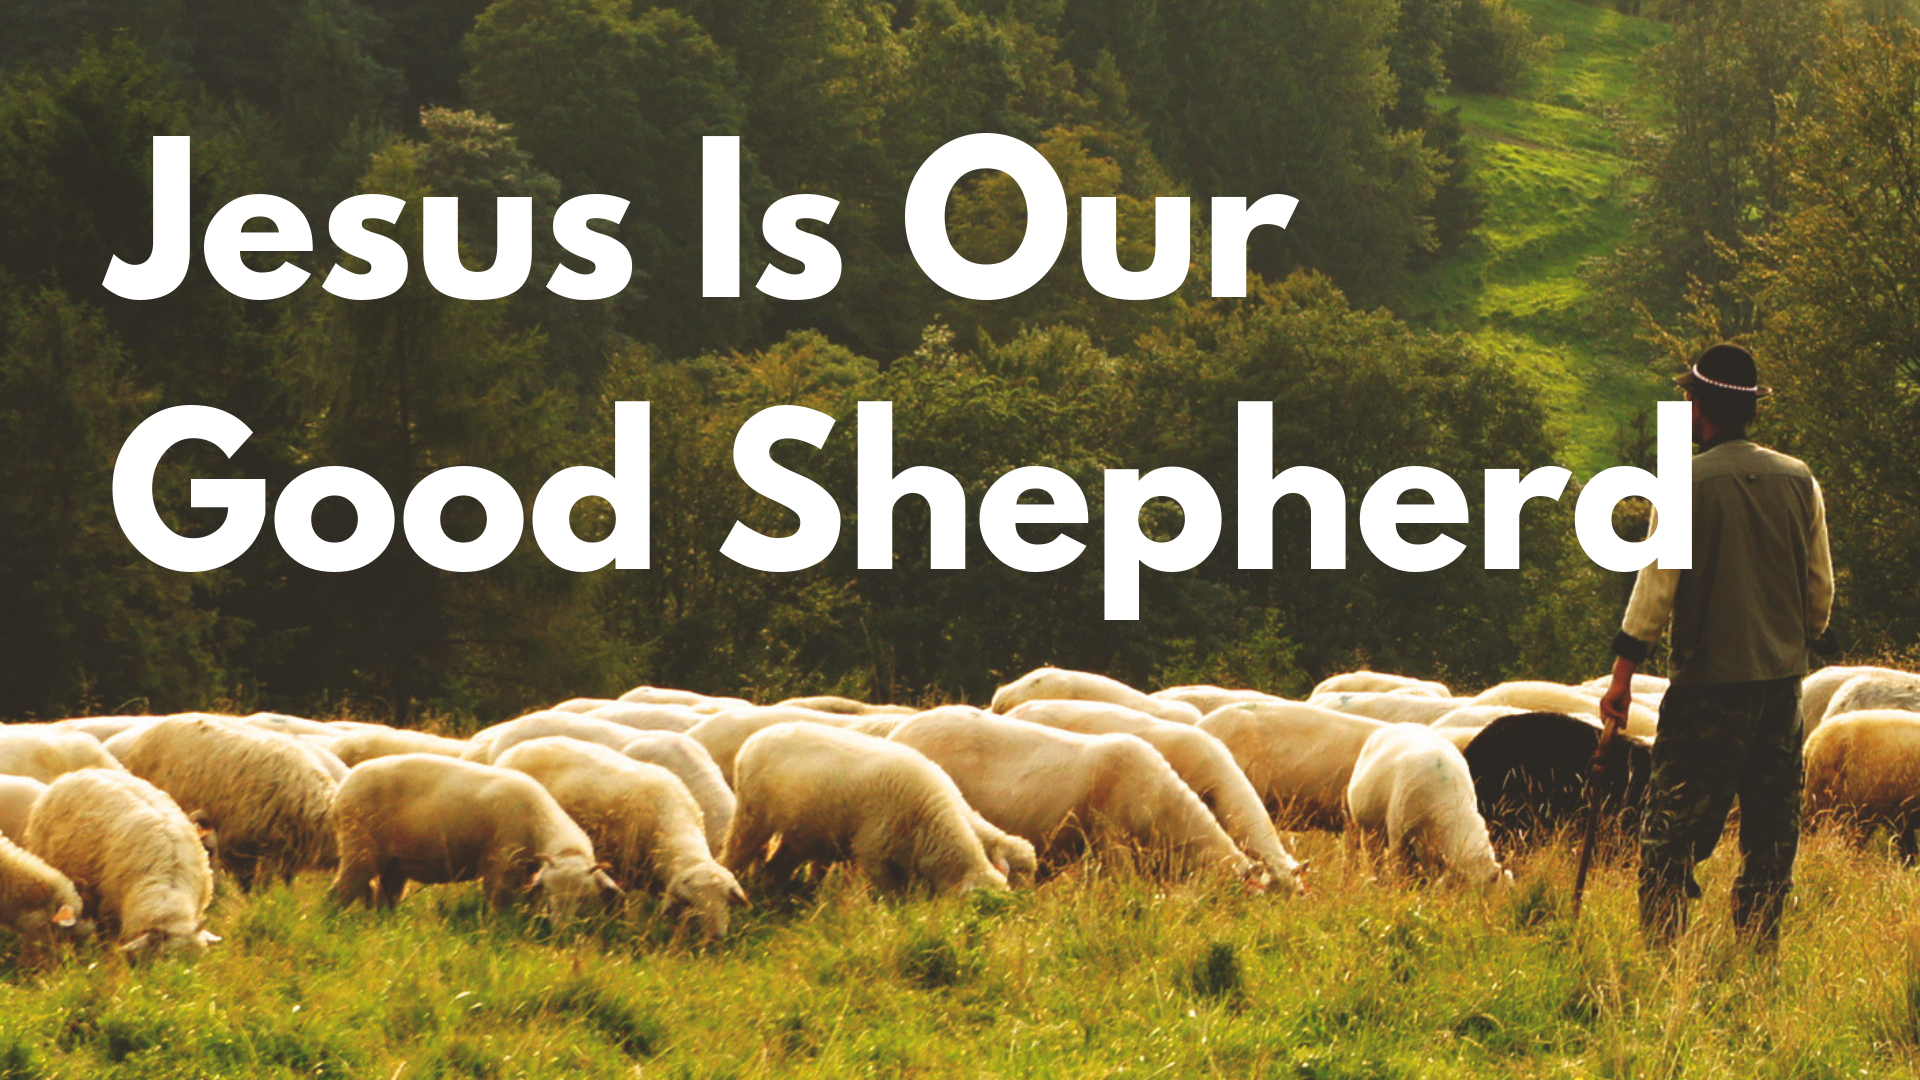 The Good shepherd 4.png